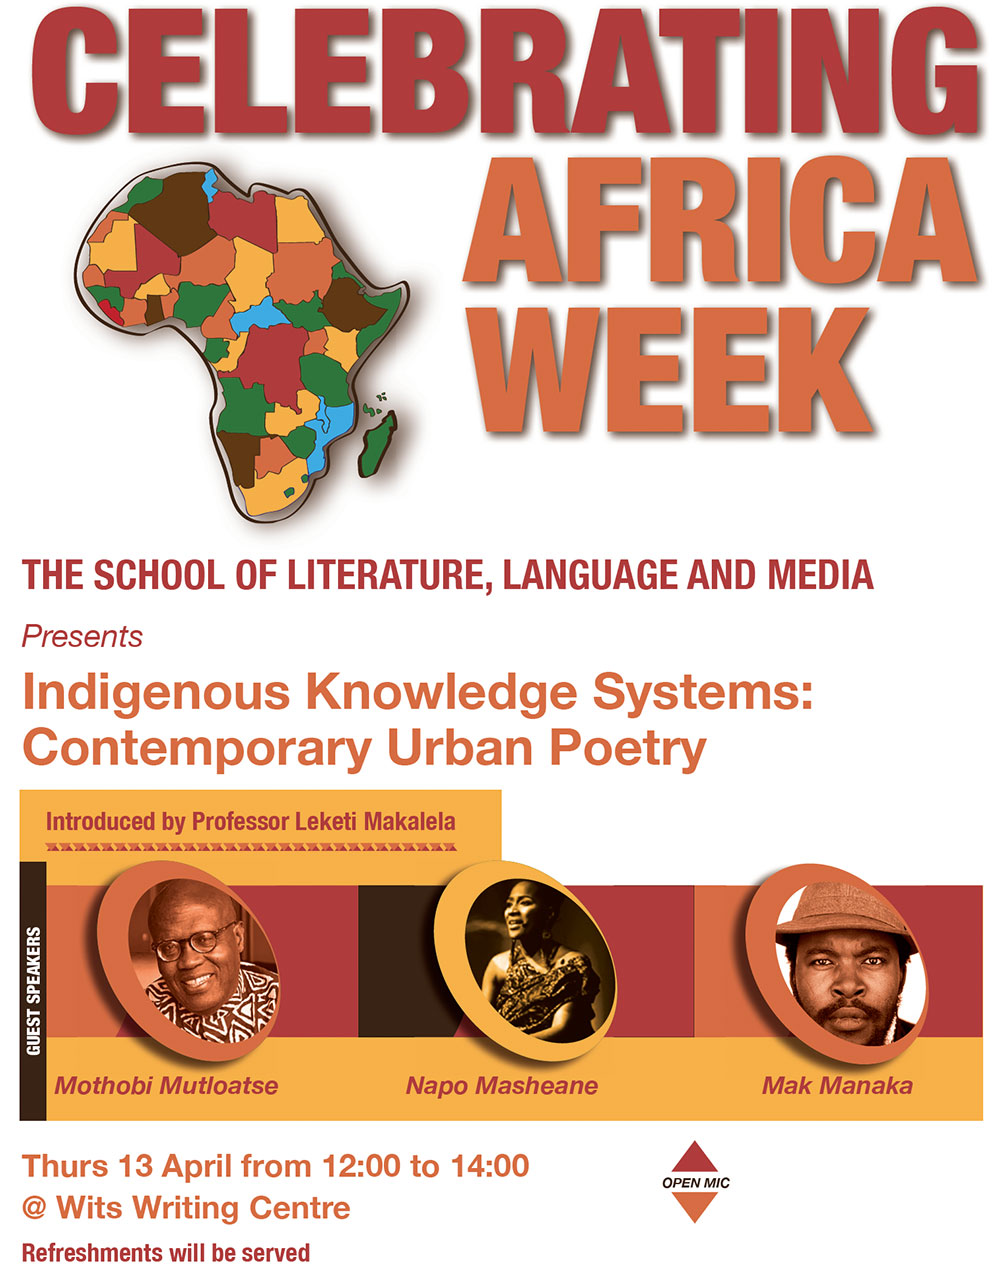 Africa Week Contemporary Urban Poetry